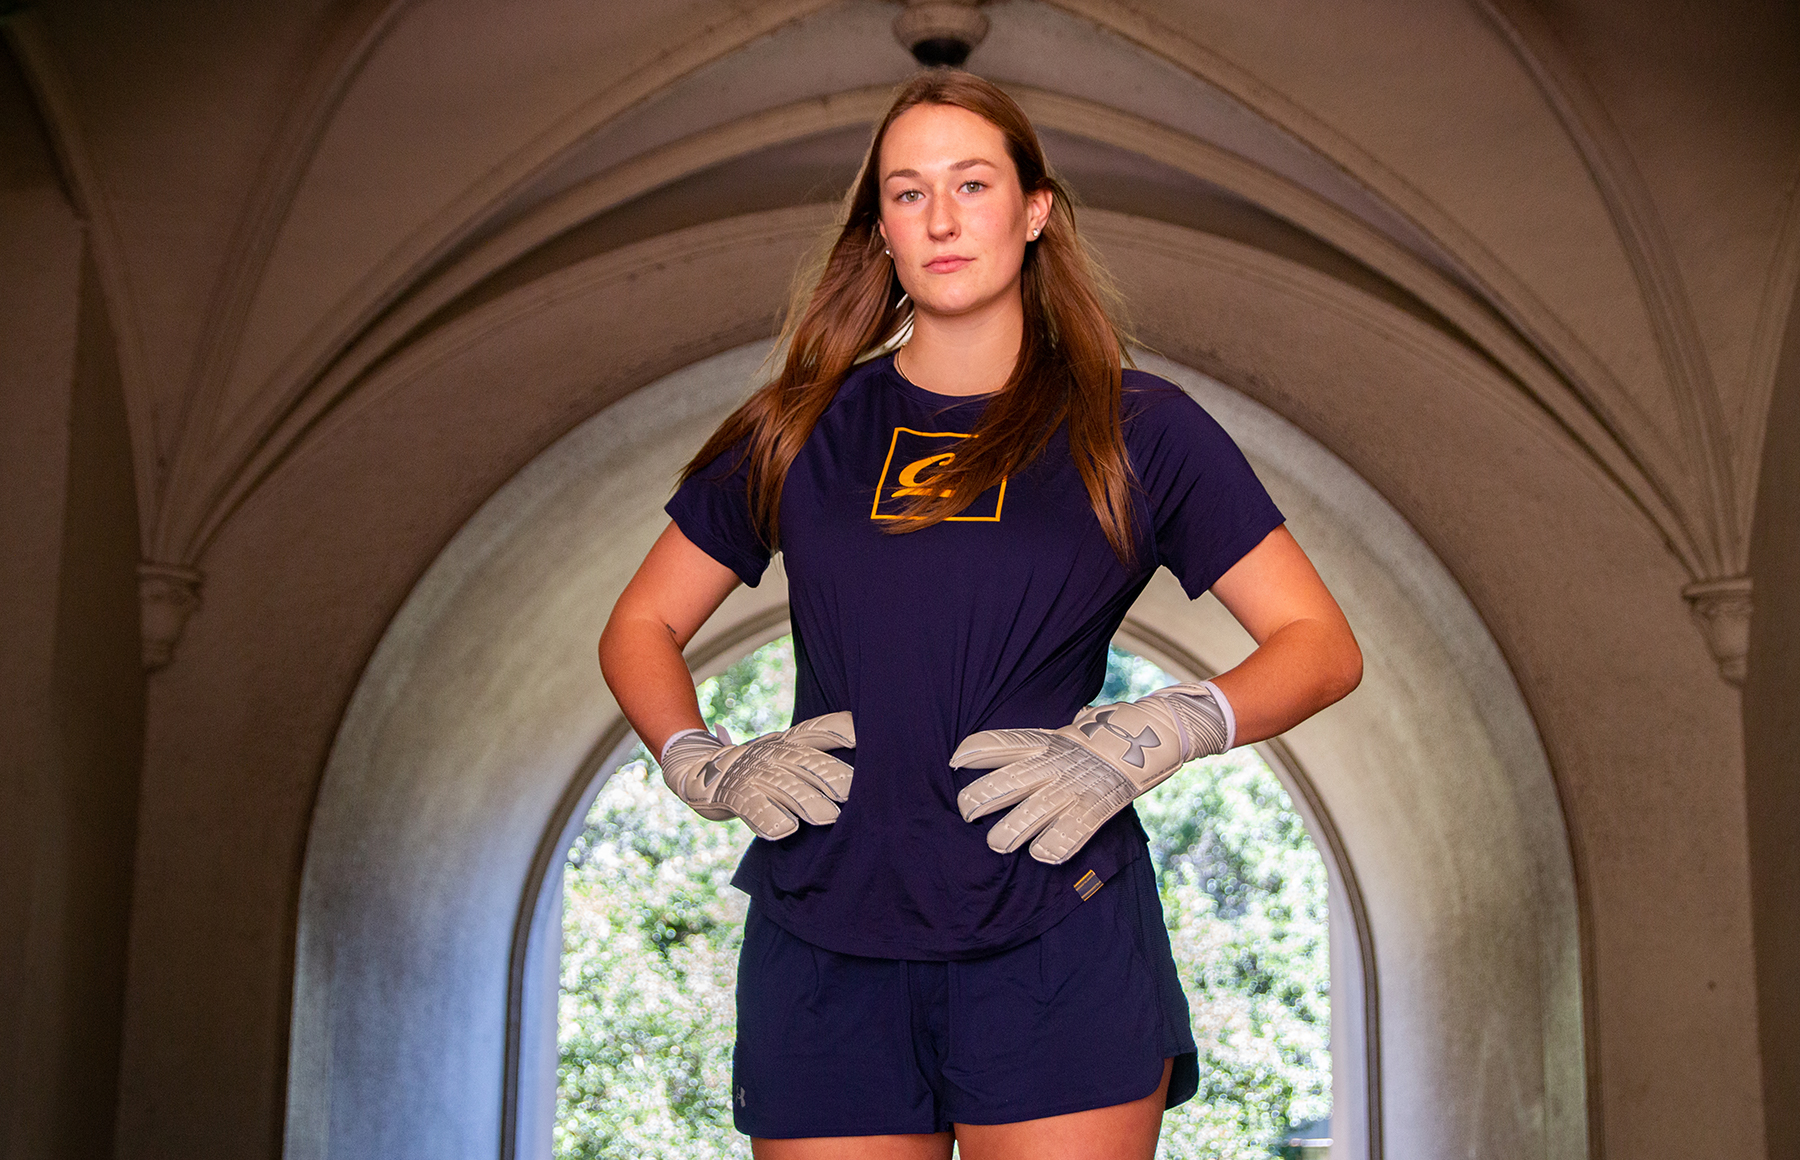 Angelina Anderson's ascent to Cal's cream of the crop